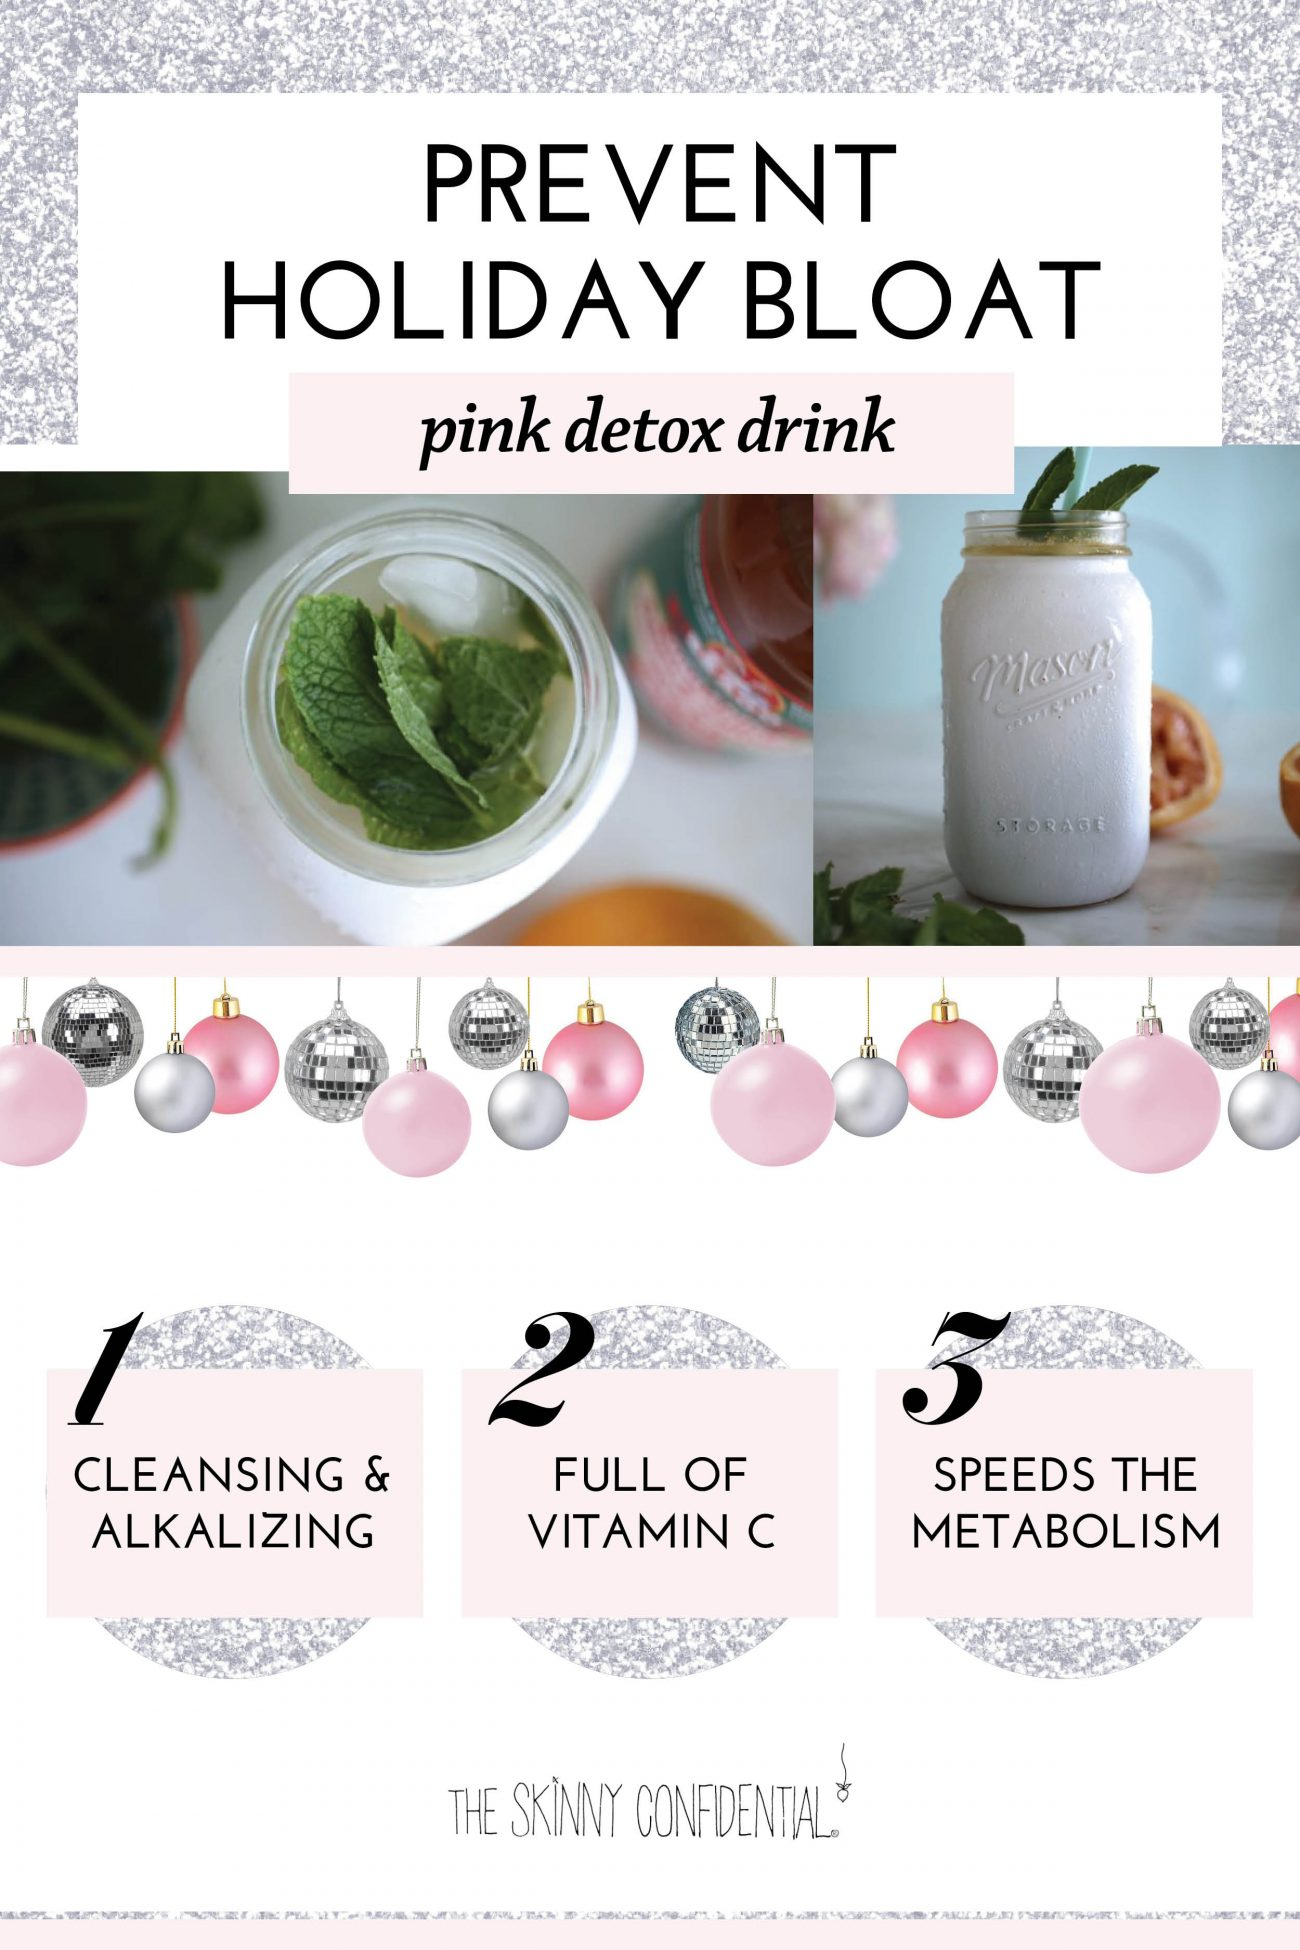 tsc pink detox drink by the skinny confidential